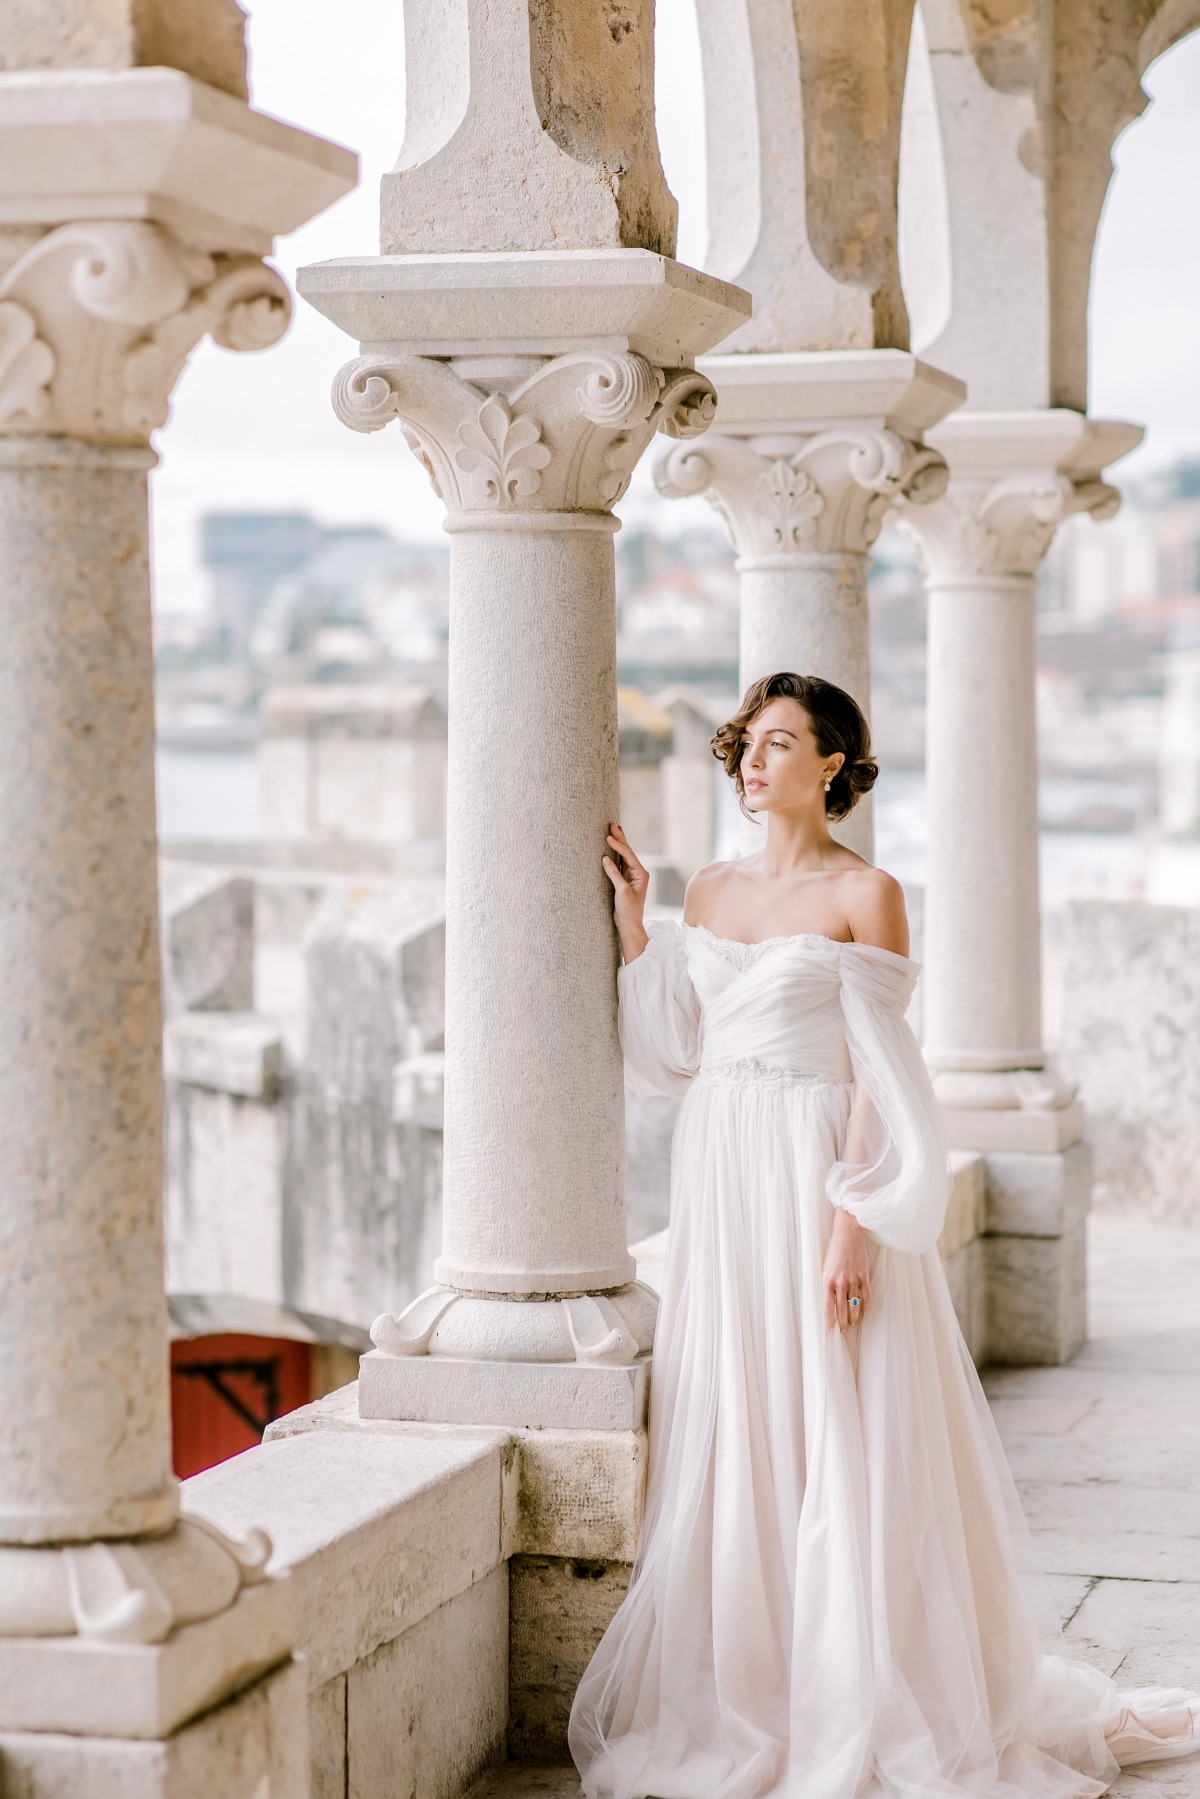 off the shoulder wedding gown by Gio Rodrigues